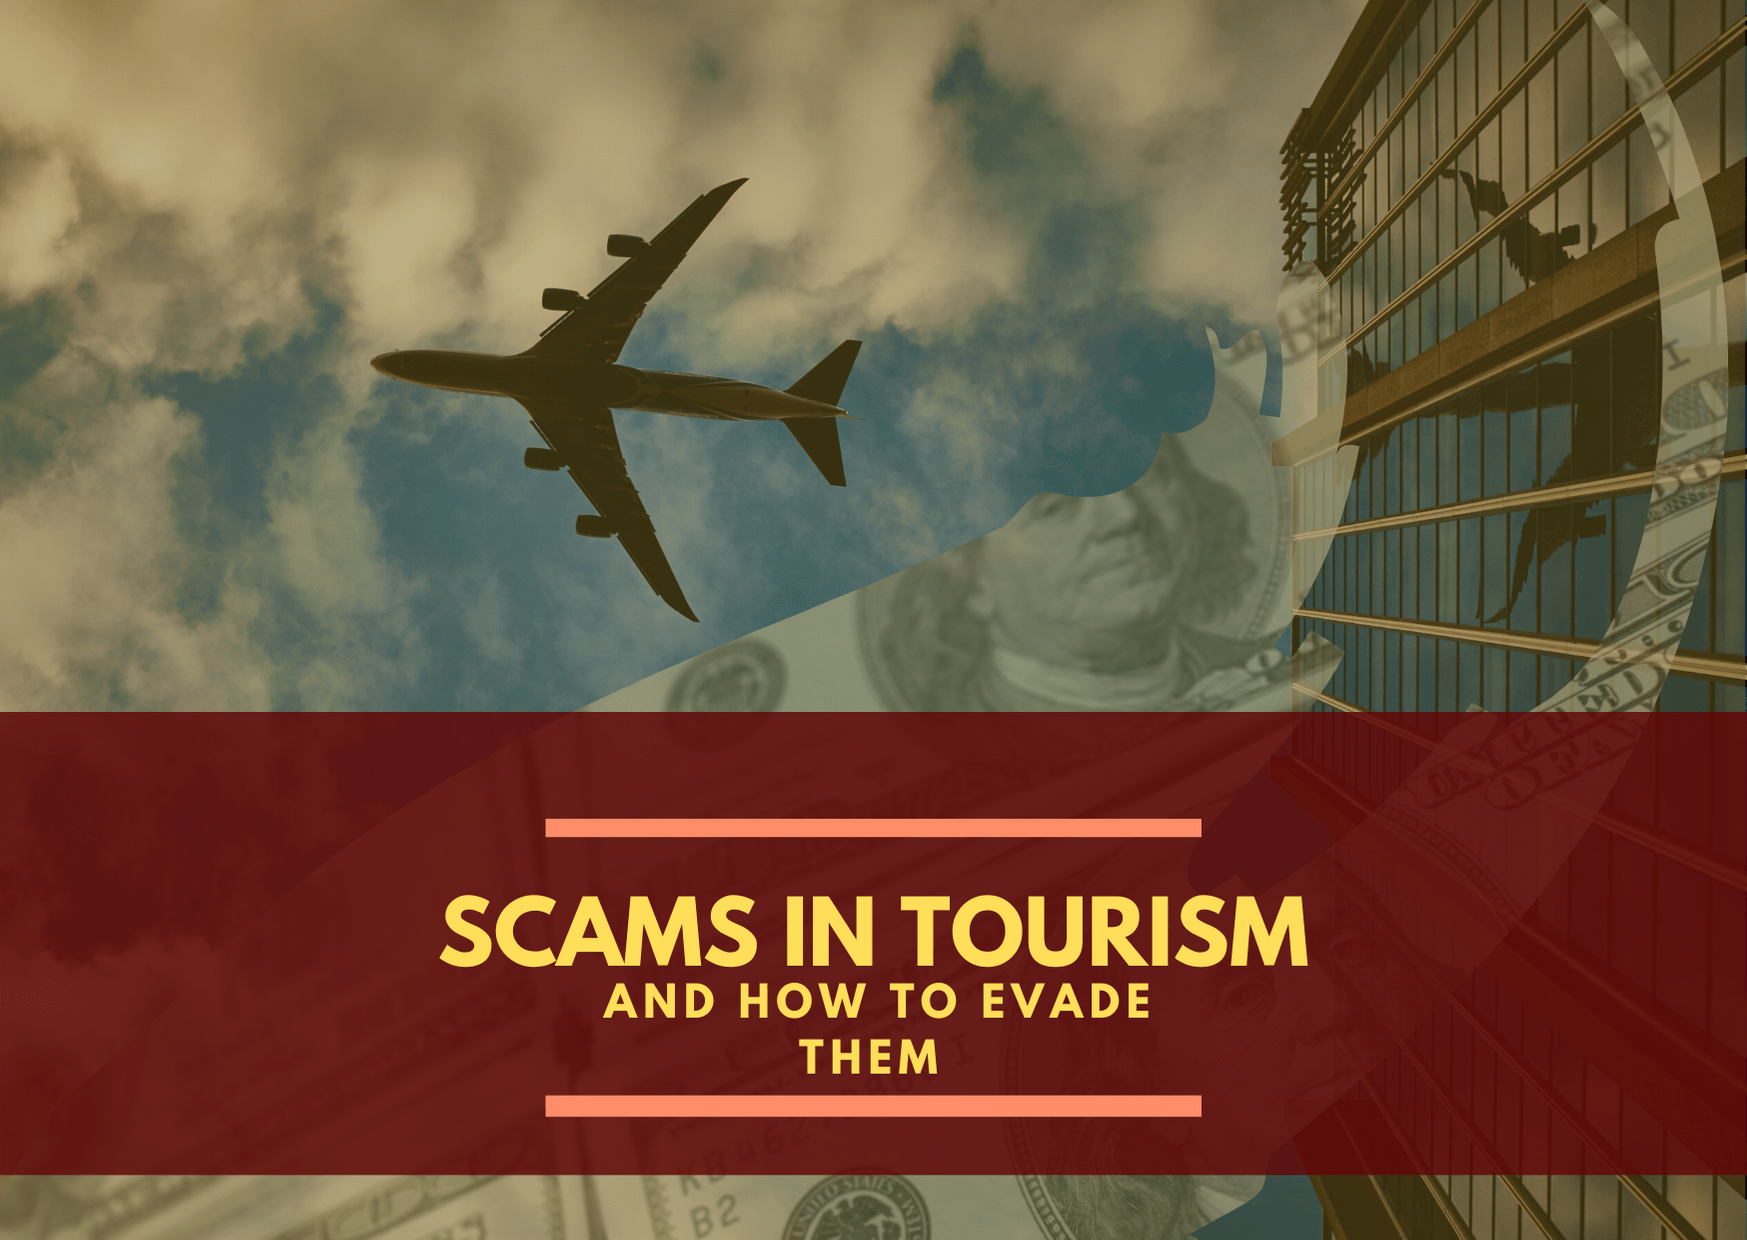 Tourism scams. What types of scam are there and how to prevent them